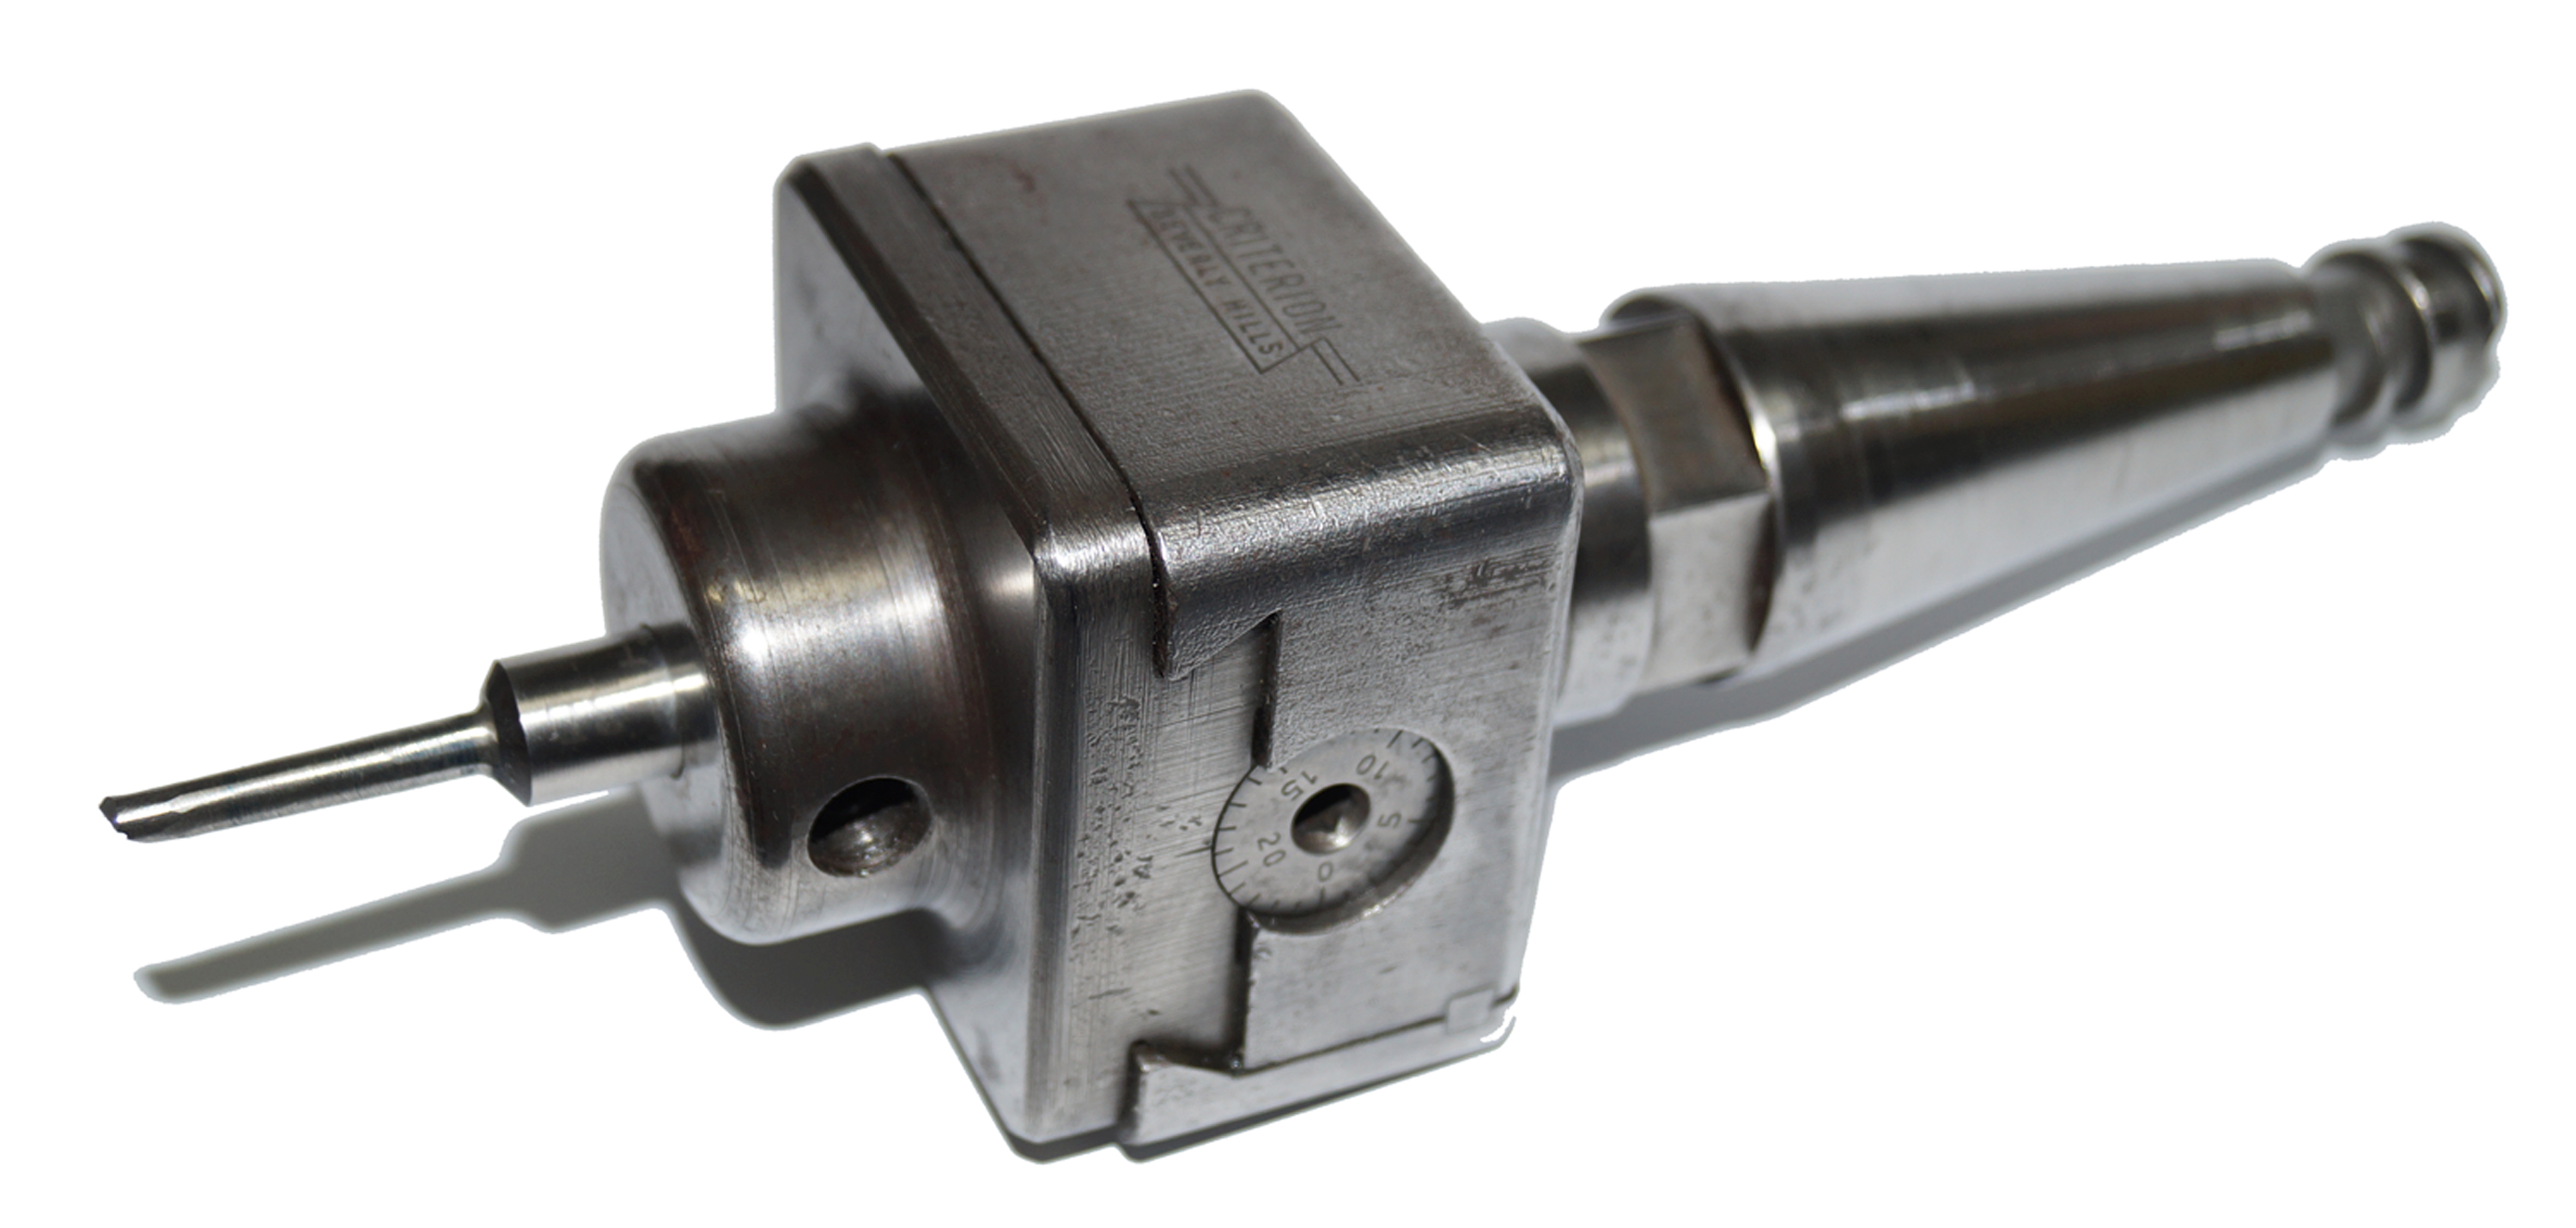 Moore Jig Borer Boring Head Adapter - Criterion